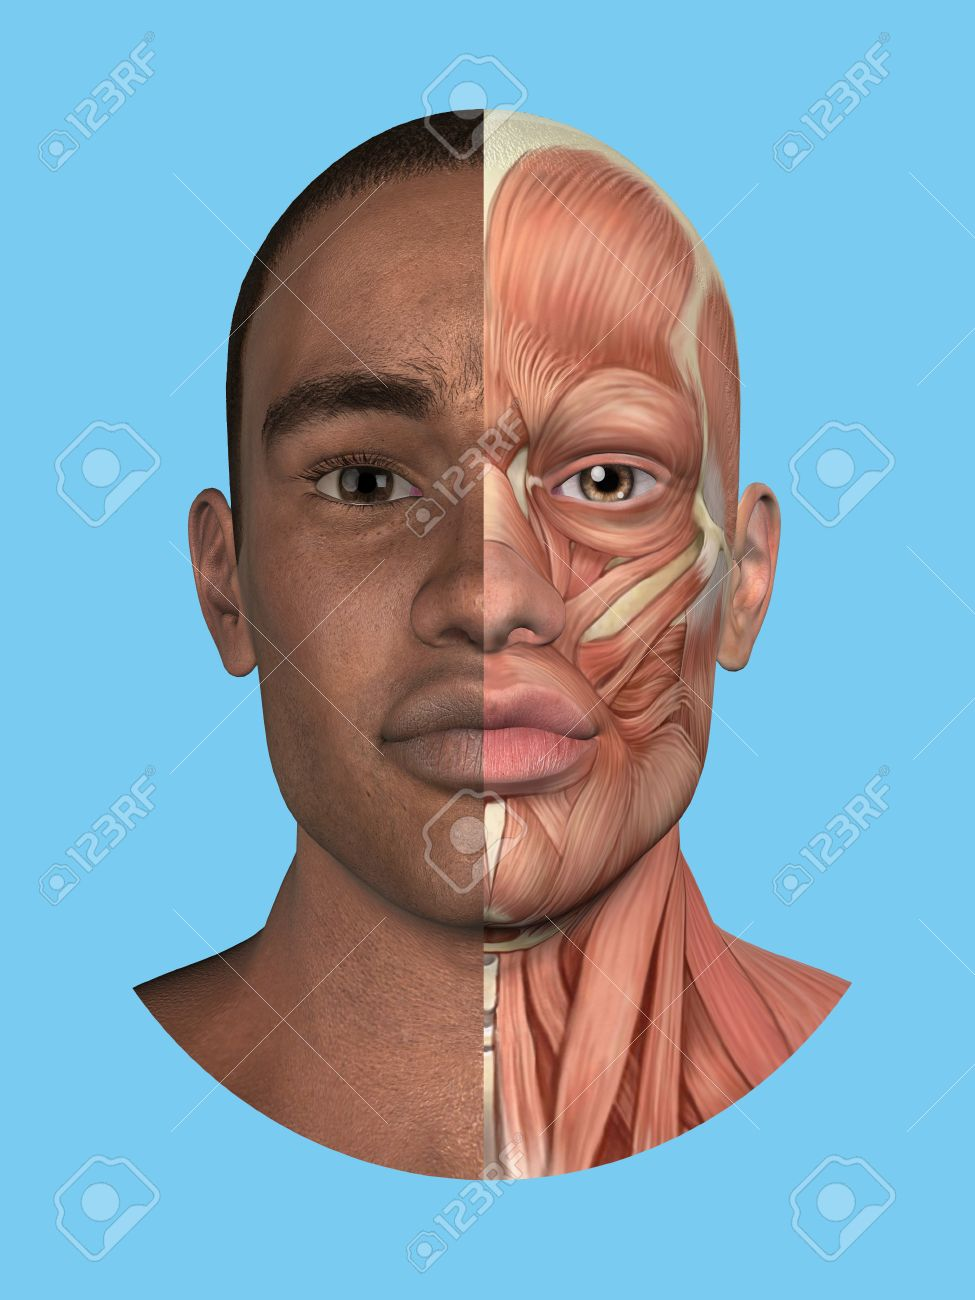 Anatomy Split Front View Of Face And Major Facial Muscles Of Stock